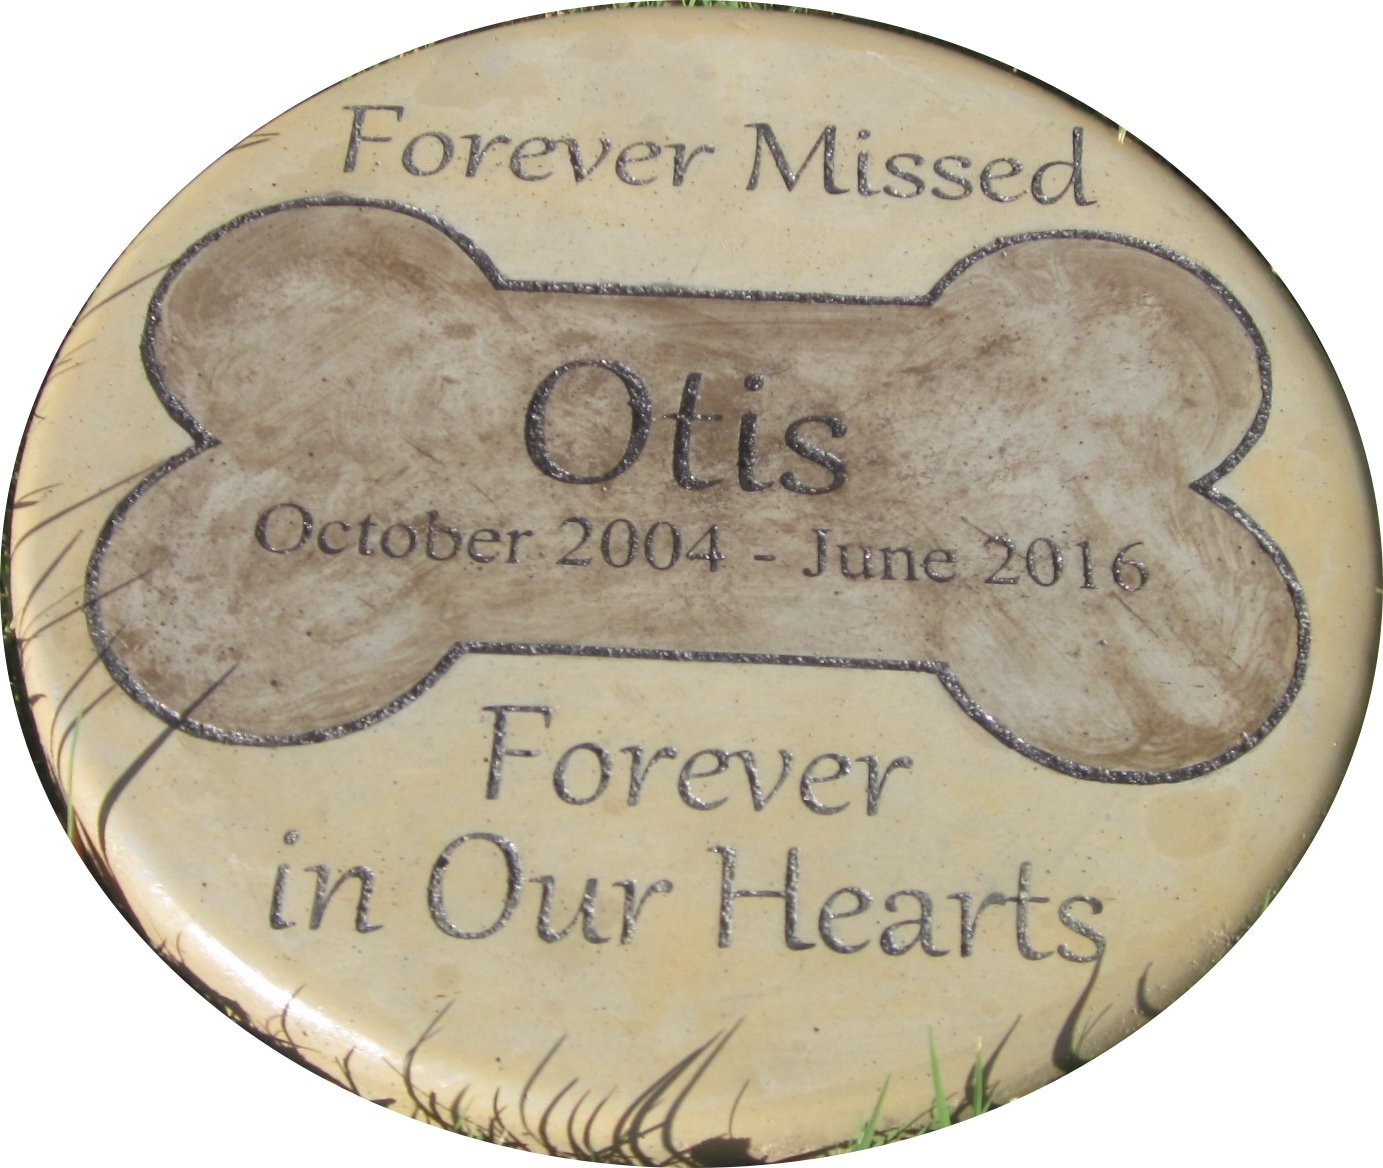 """Personalized Pet Memorial Step Stone 11""""Diameter"""" Forever Missed Forever in Our Hearts"""